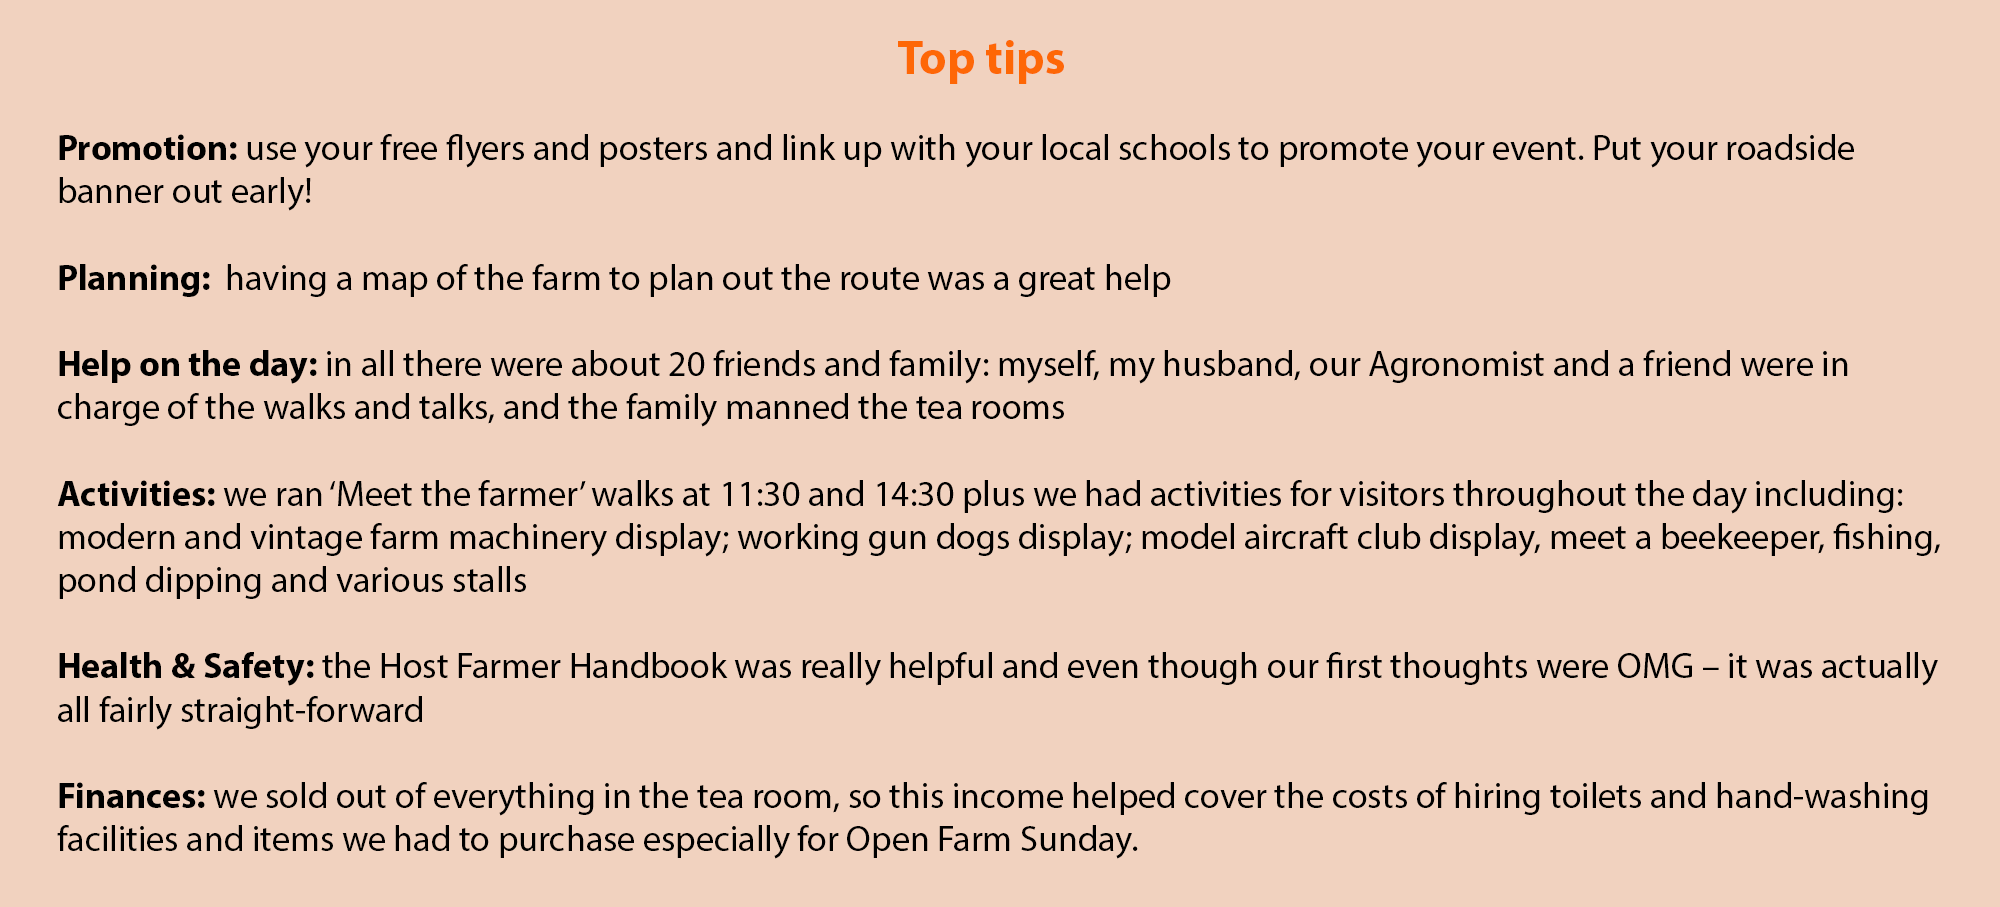 OFS_CASE_STUDY_TOP_TIPS_WHITACRE_180126_153310.png#asset:4513